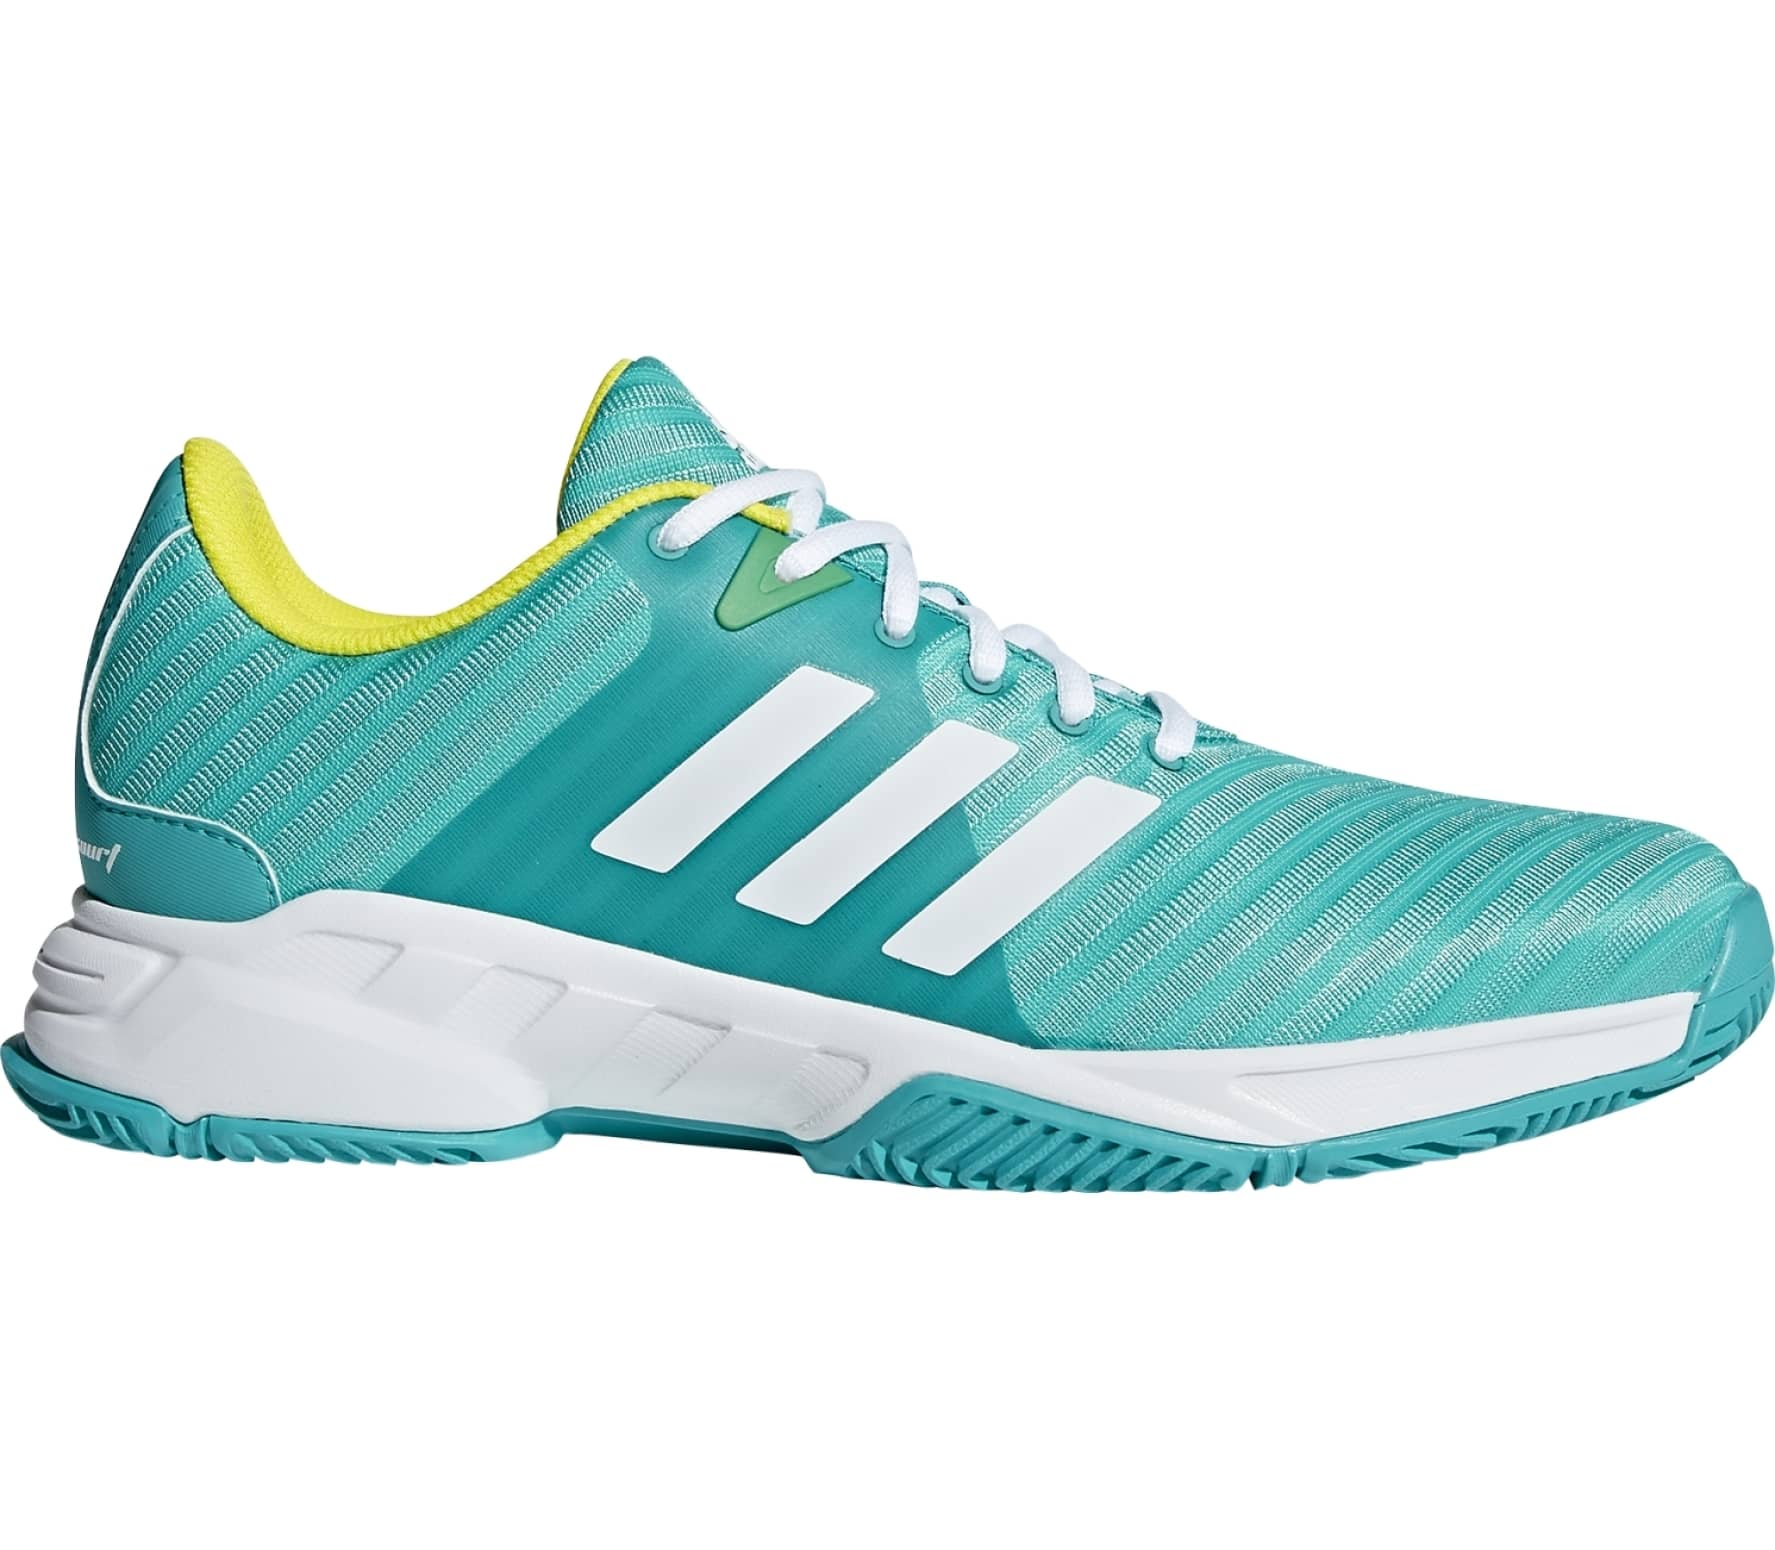 f21c81d074b6a adidas performance - Barricade Court 3 men s tennis shoes (turquoise ...